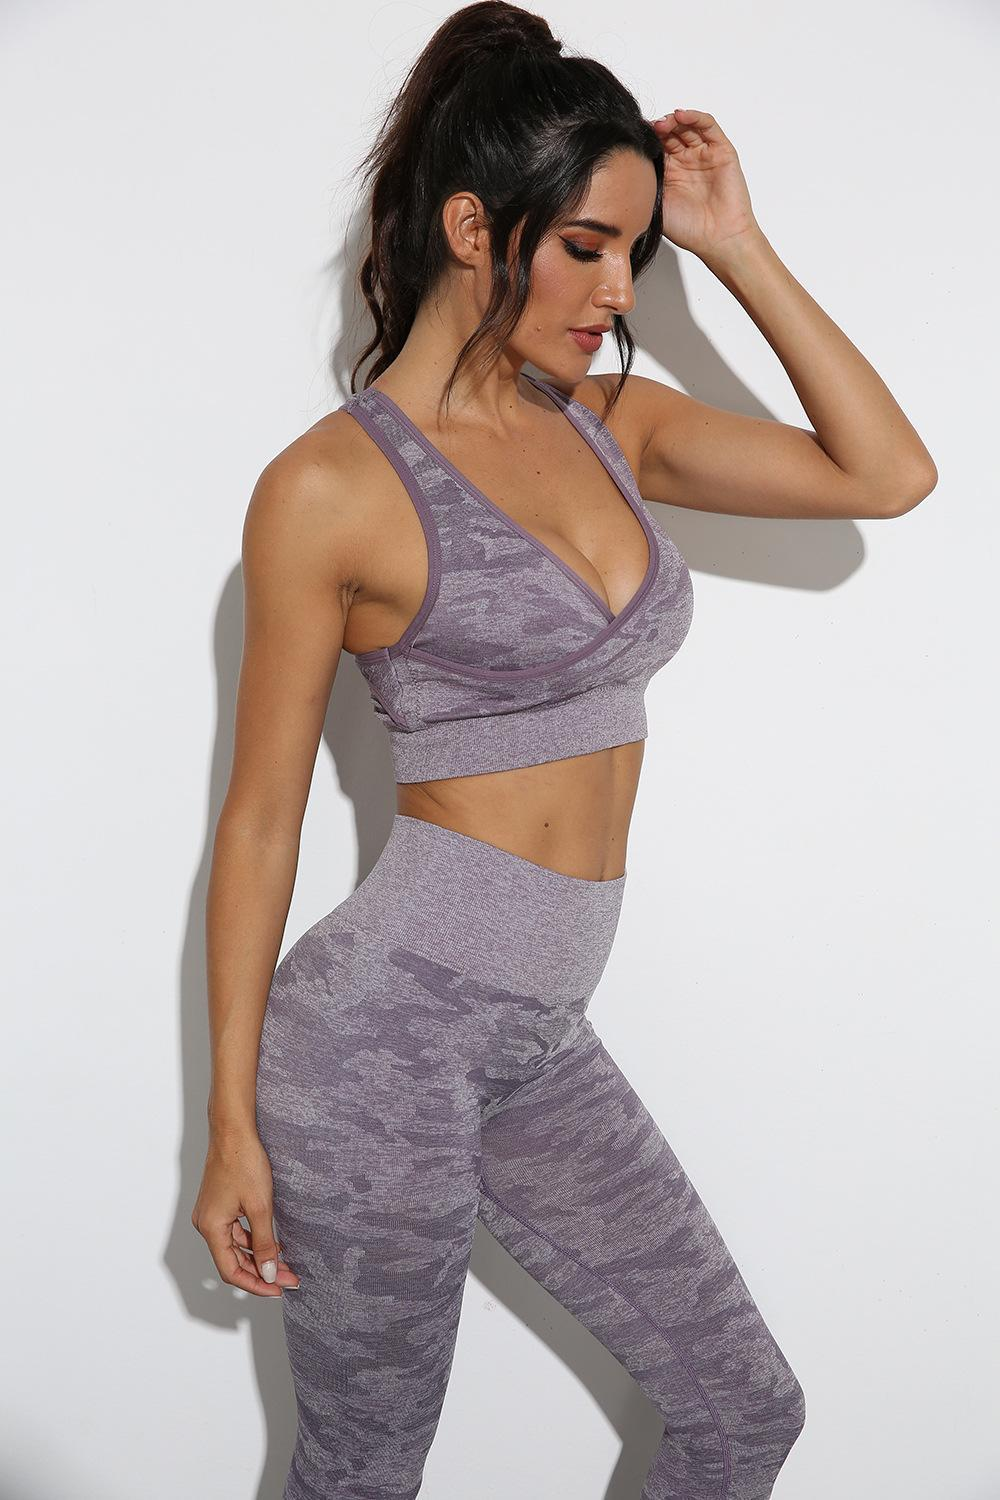 Tracksuits Designer yoga set V-Neck sexy t shirts Womens Yoga Outfits Suit Gym wear Sportswear Fitness s Bra Align Leggings pants workout